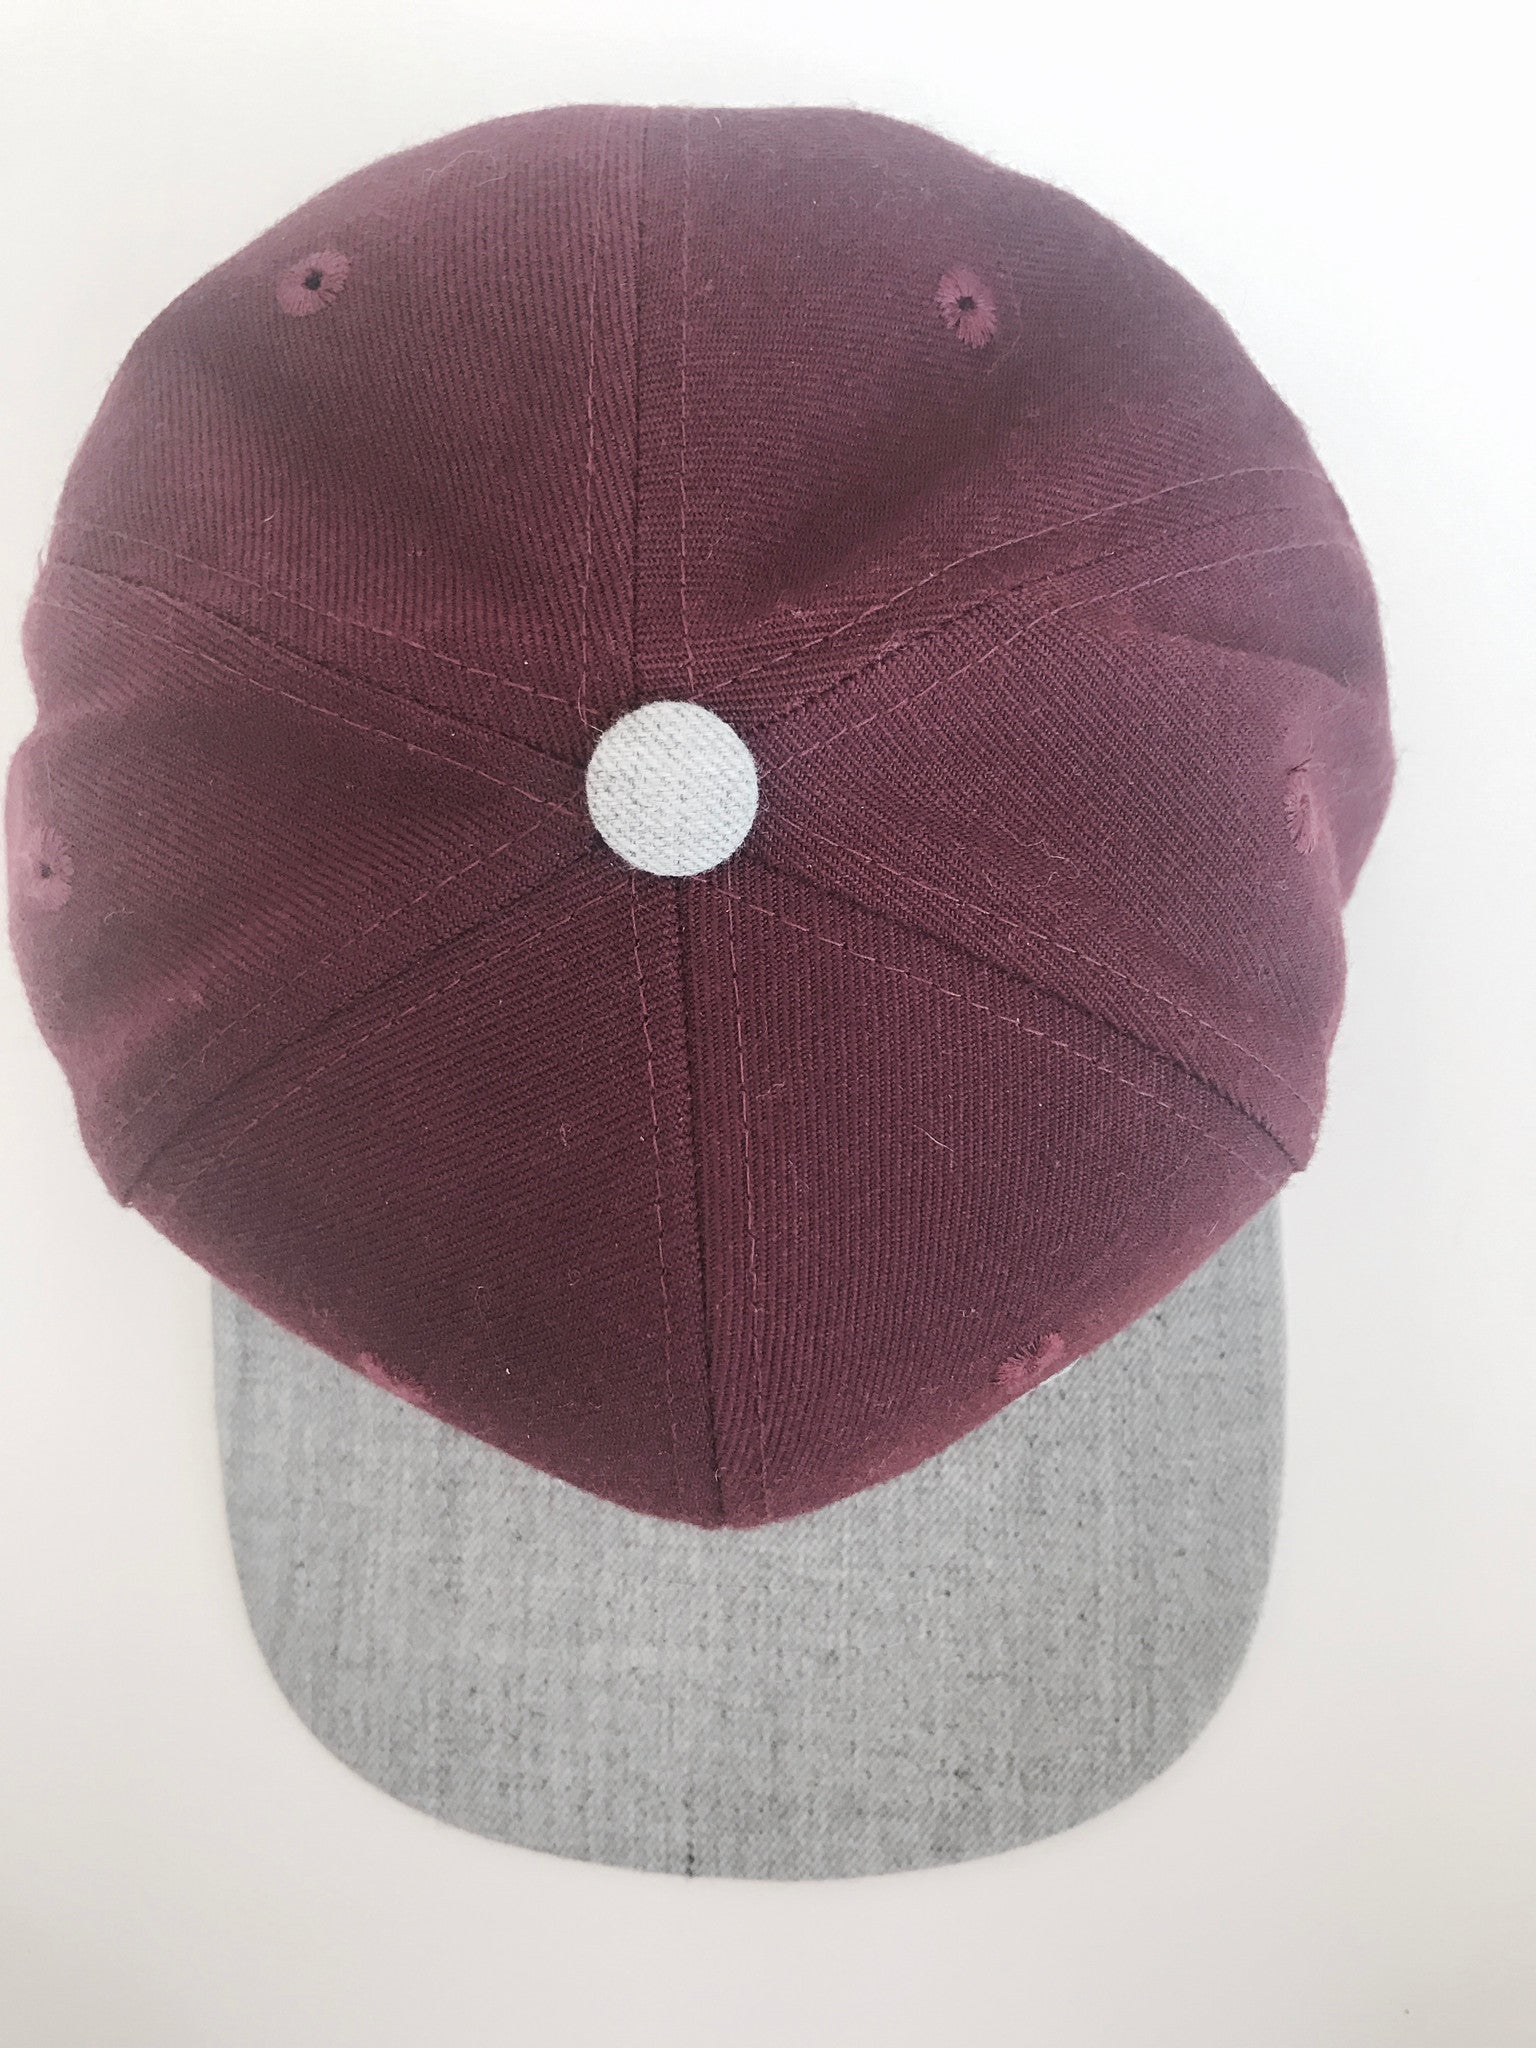 HOA Snap Burgundy